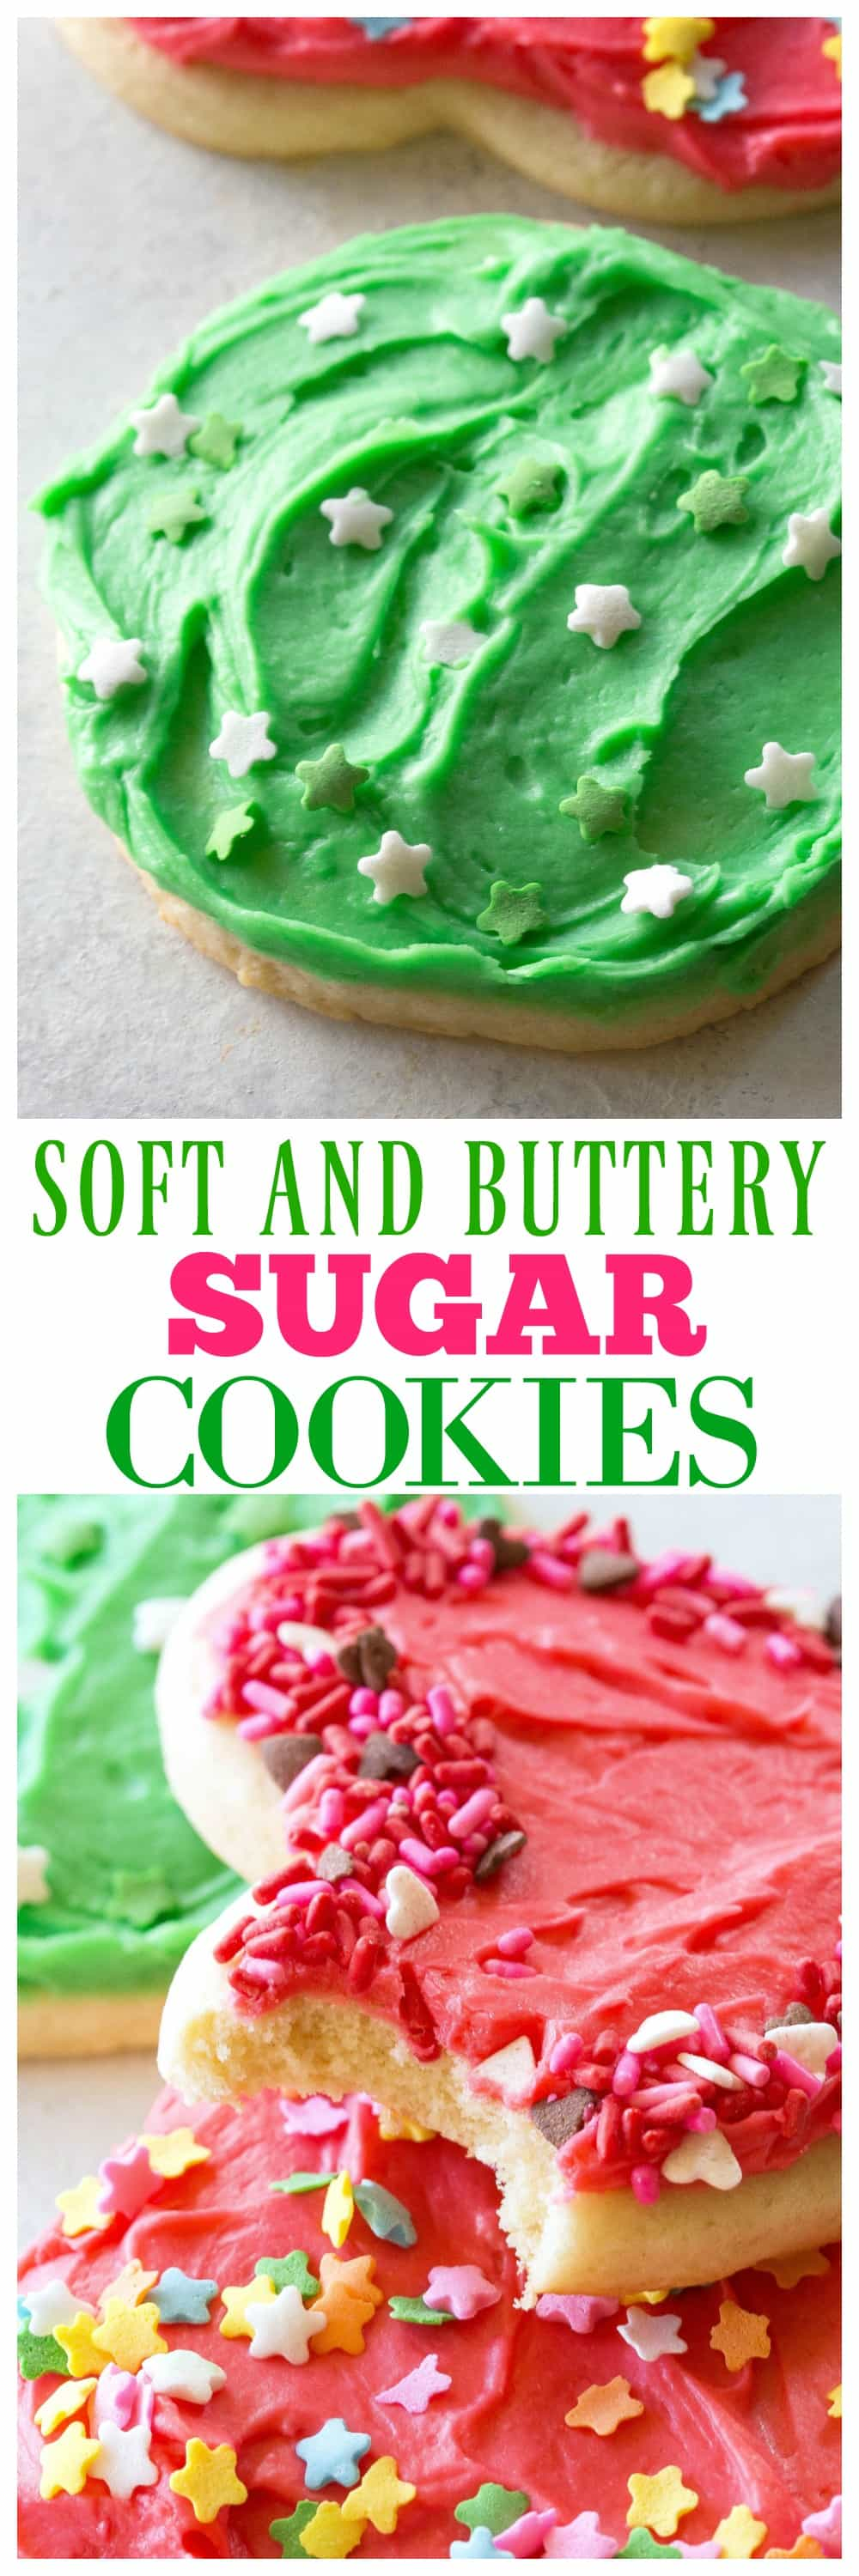 These Sugar Cookies are soft, buttery and great for cut-out shapes! the-girl-who-ate-everything.com